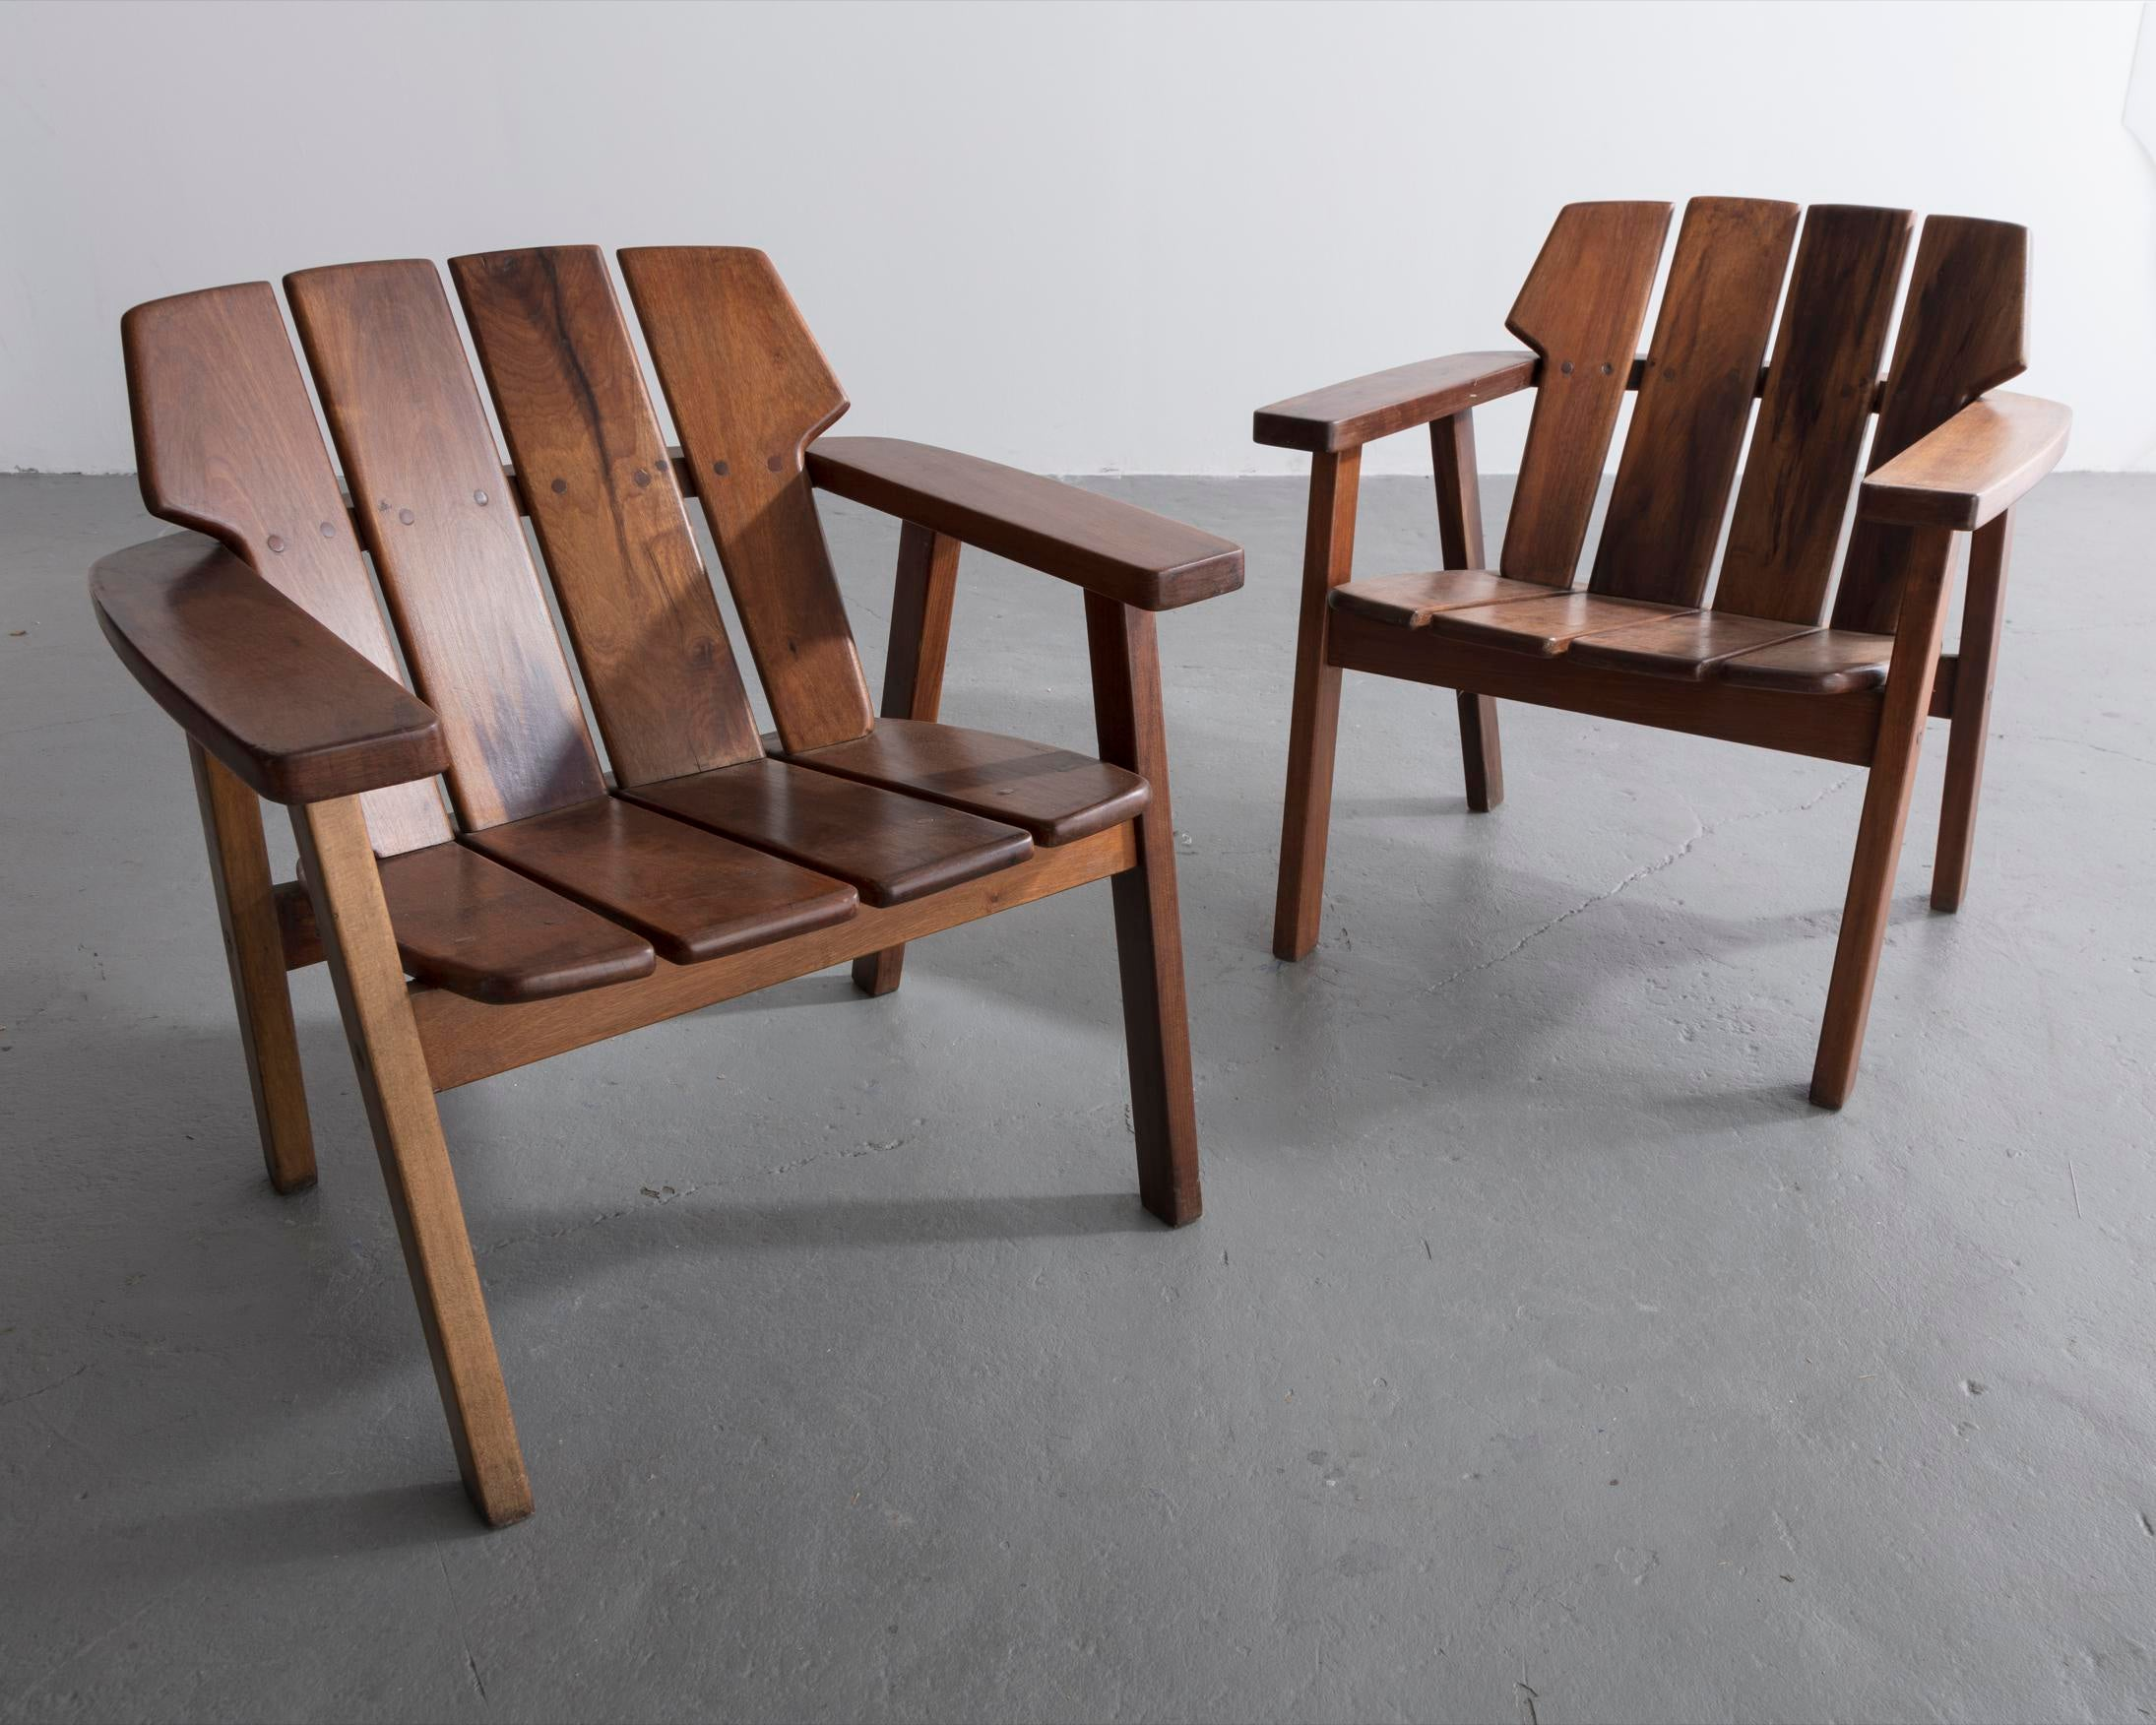 Pair Of Slatted Rosewood Lounge Chairs By Sergio Rodrigues, Brazil, 1960s.    Image